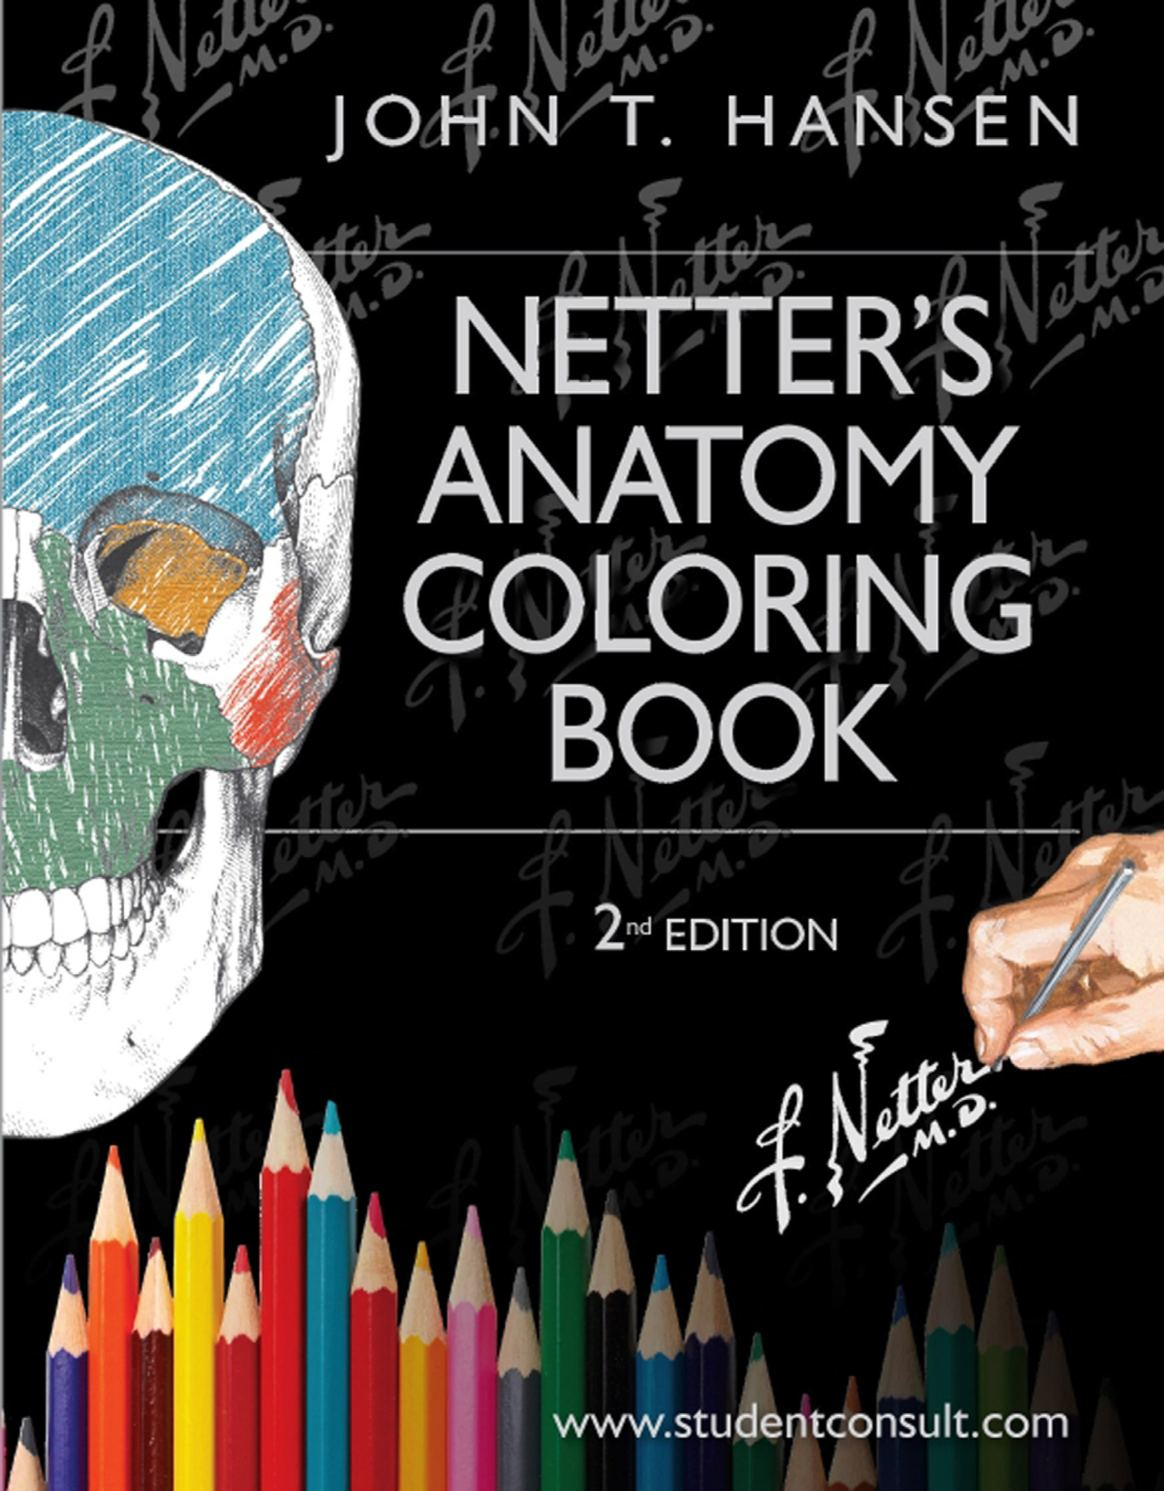 Anatomy coloring book for health professions - Anatomy Coloring Book For Health Professions 48